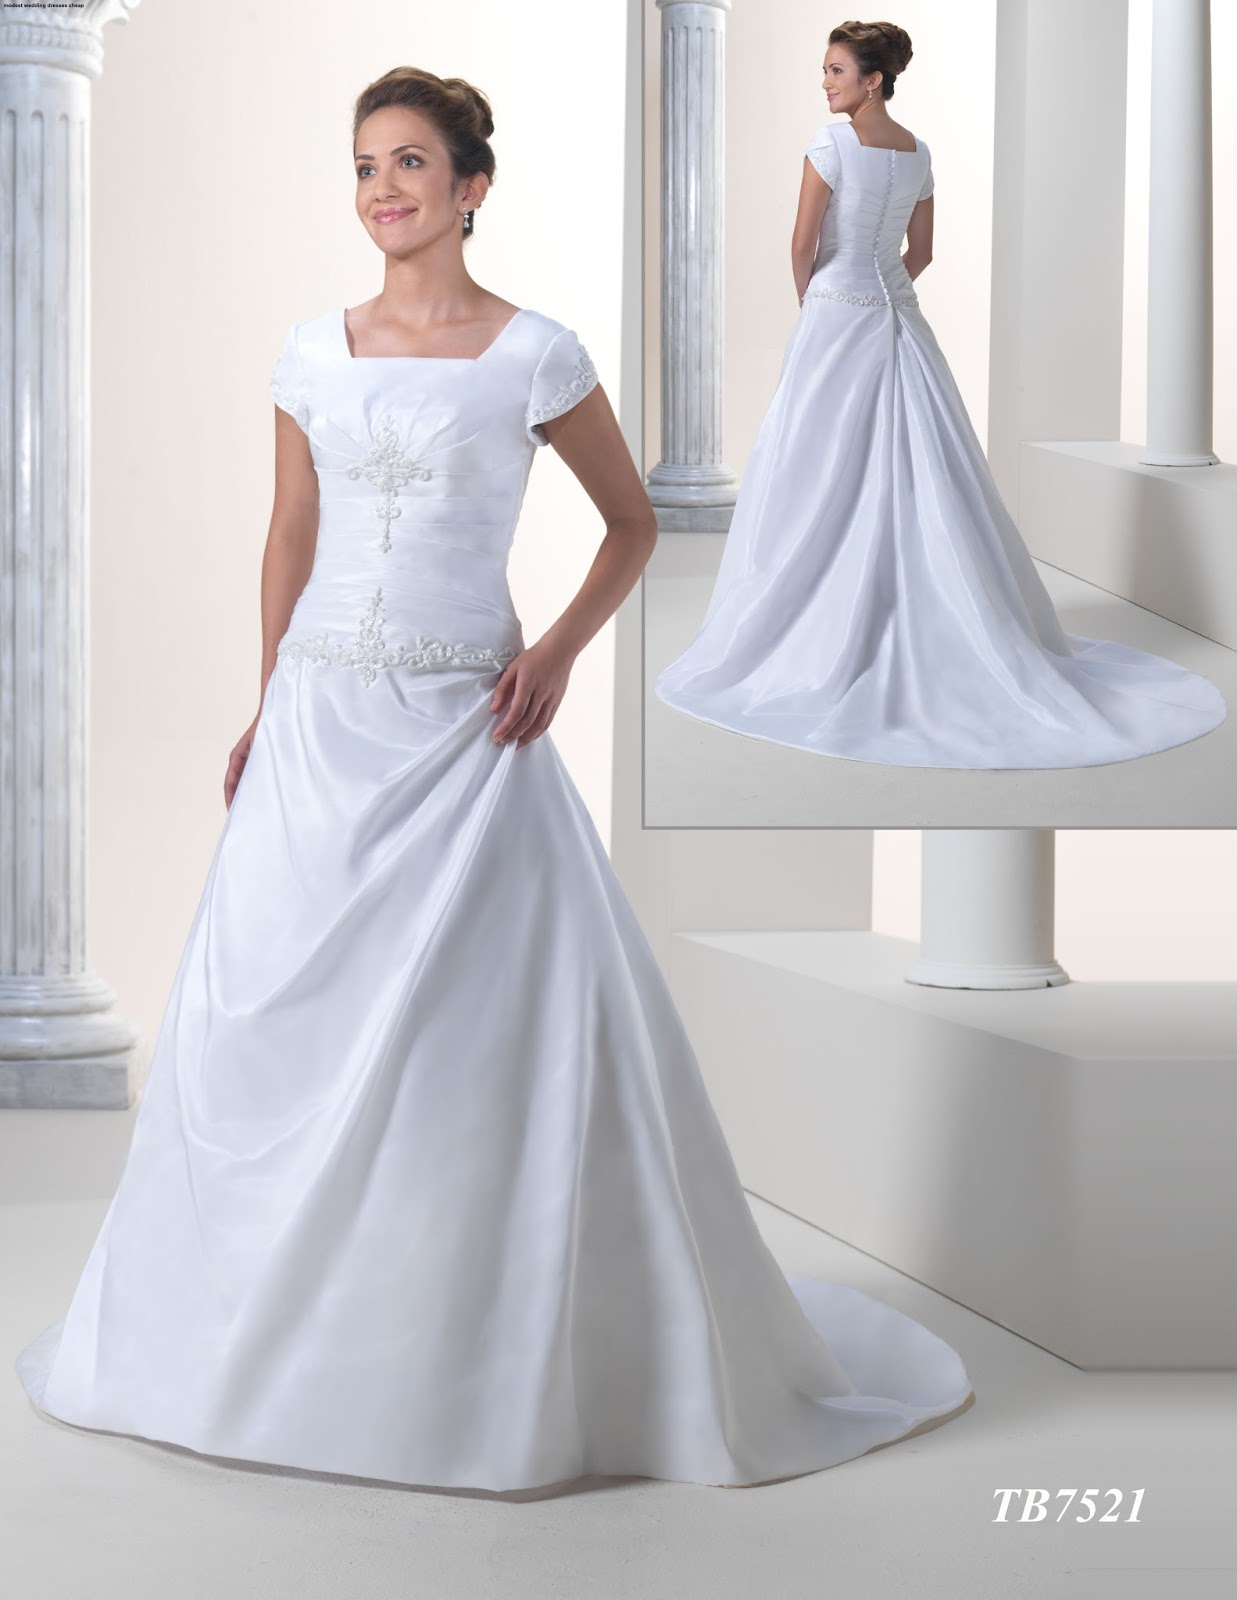 Modest wedding dresses cheap cocktail dresses 2016 modest wedding dresses cheap ombrellifo Images